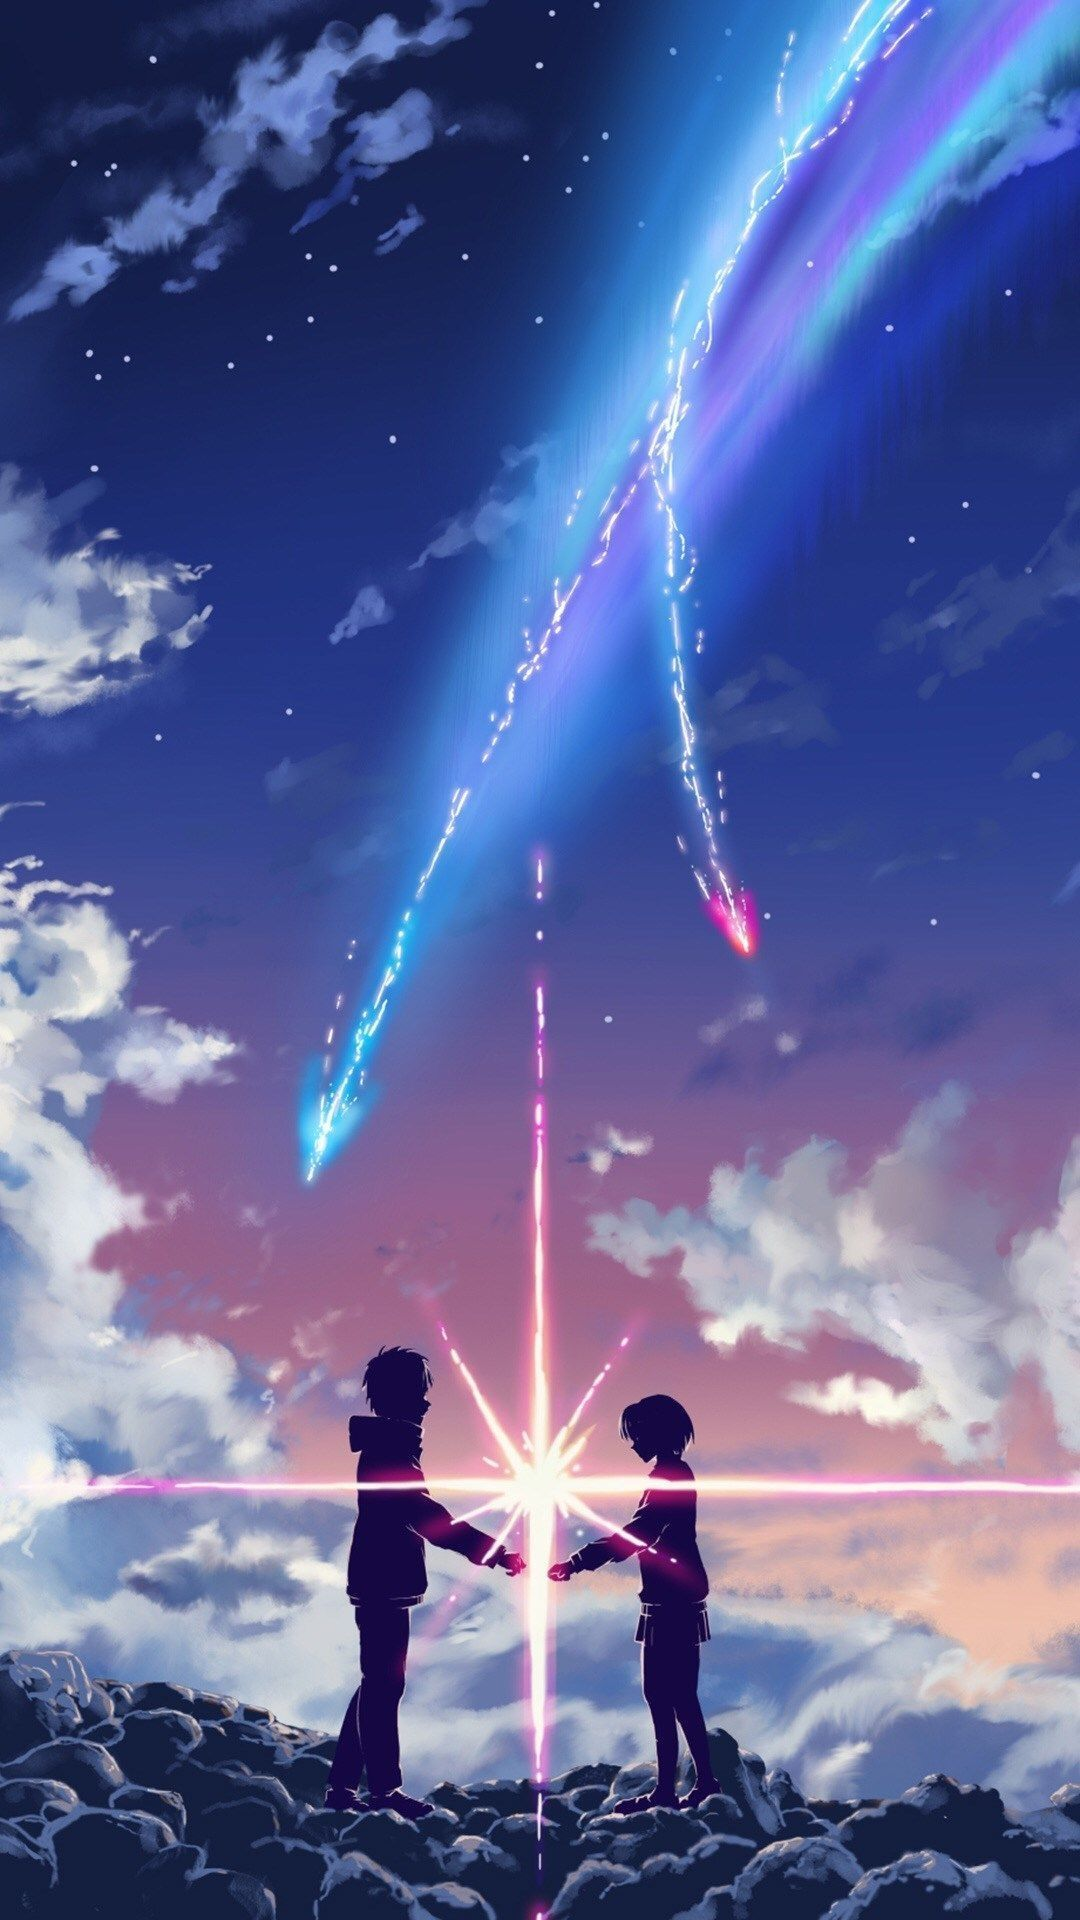 Best Of Iphone Anime Wallpaper Landscape in 2020 (With